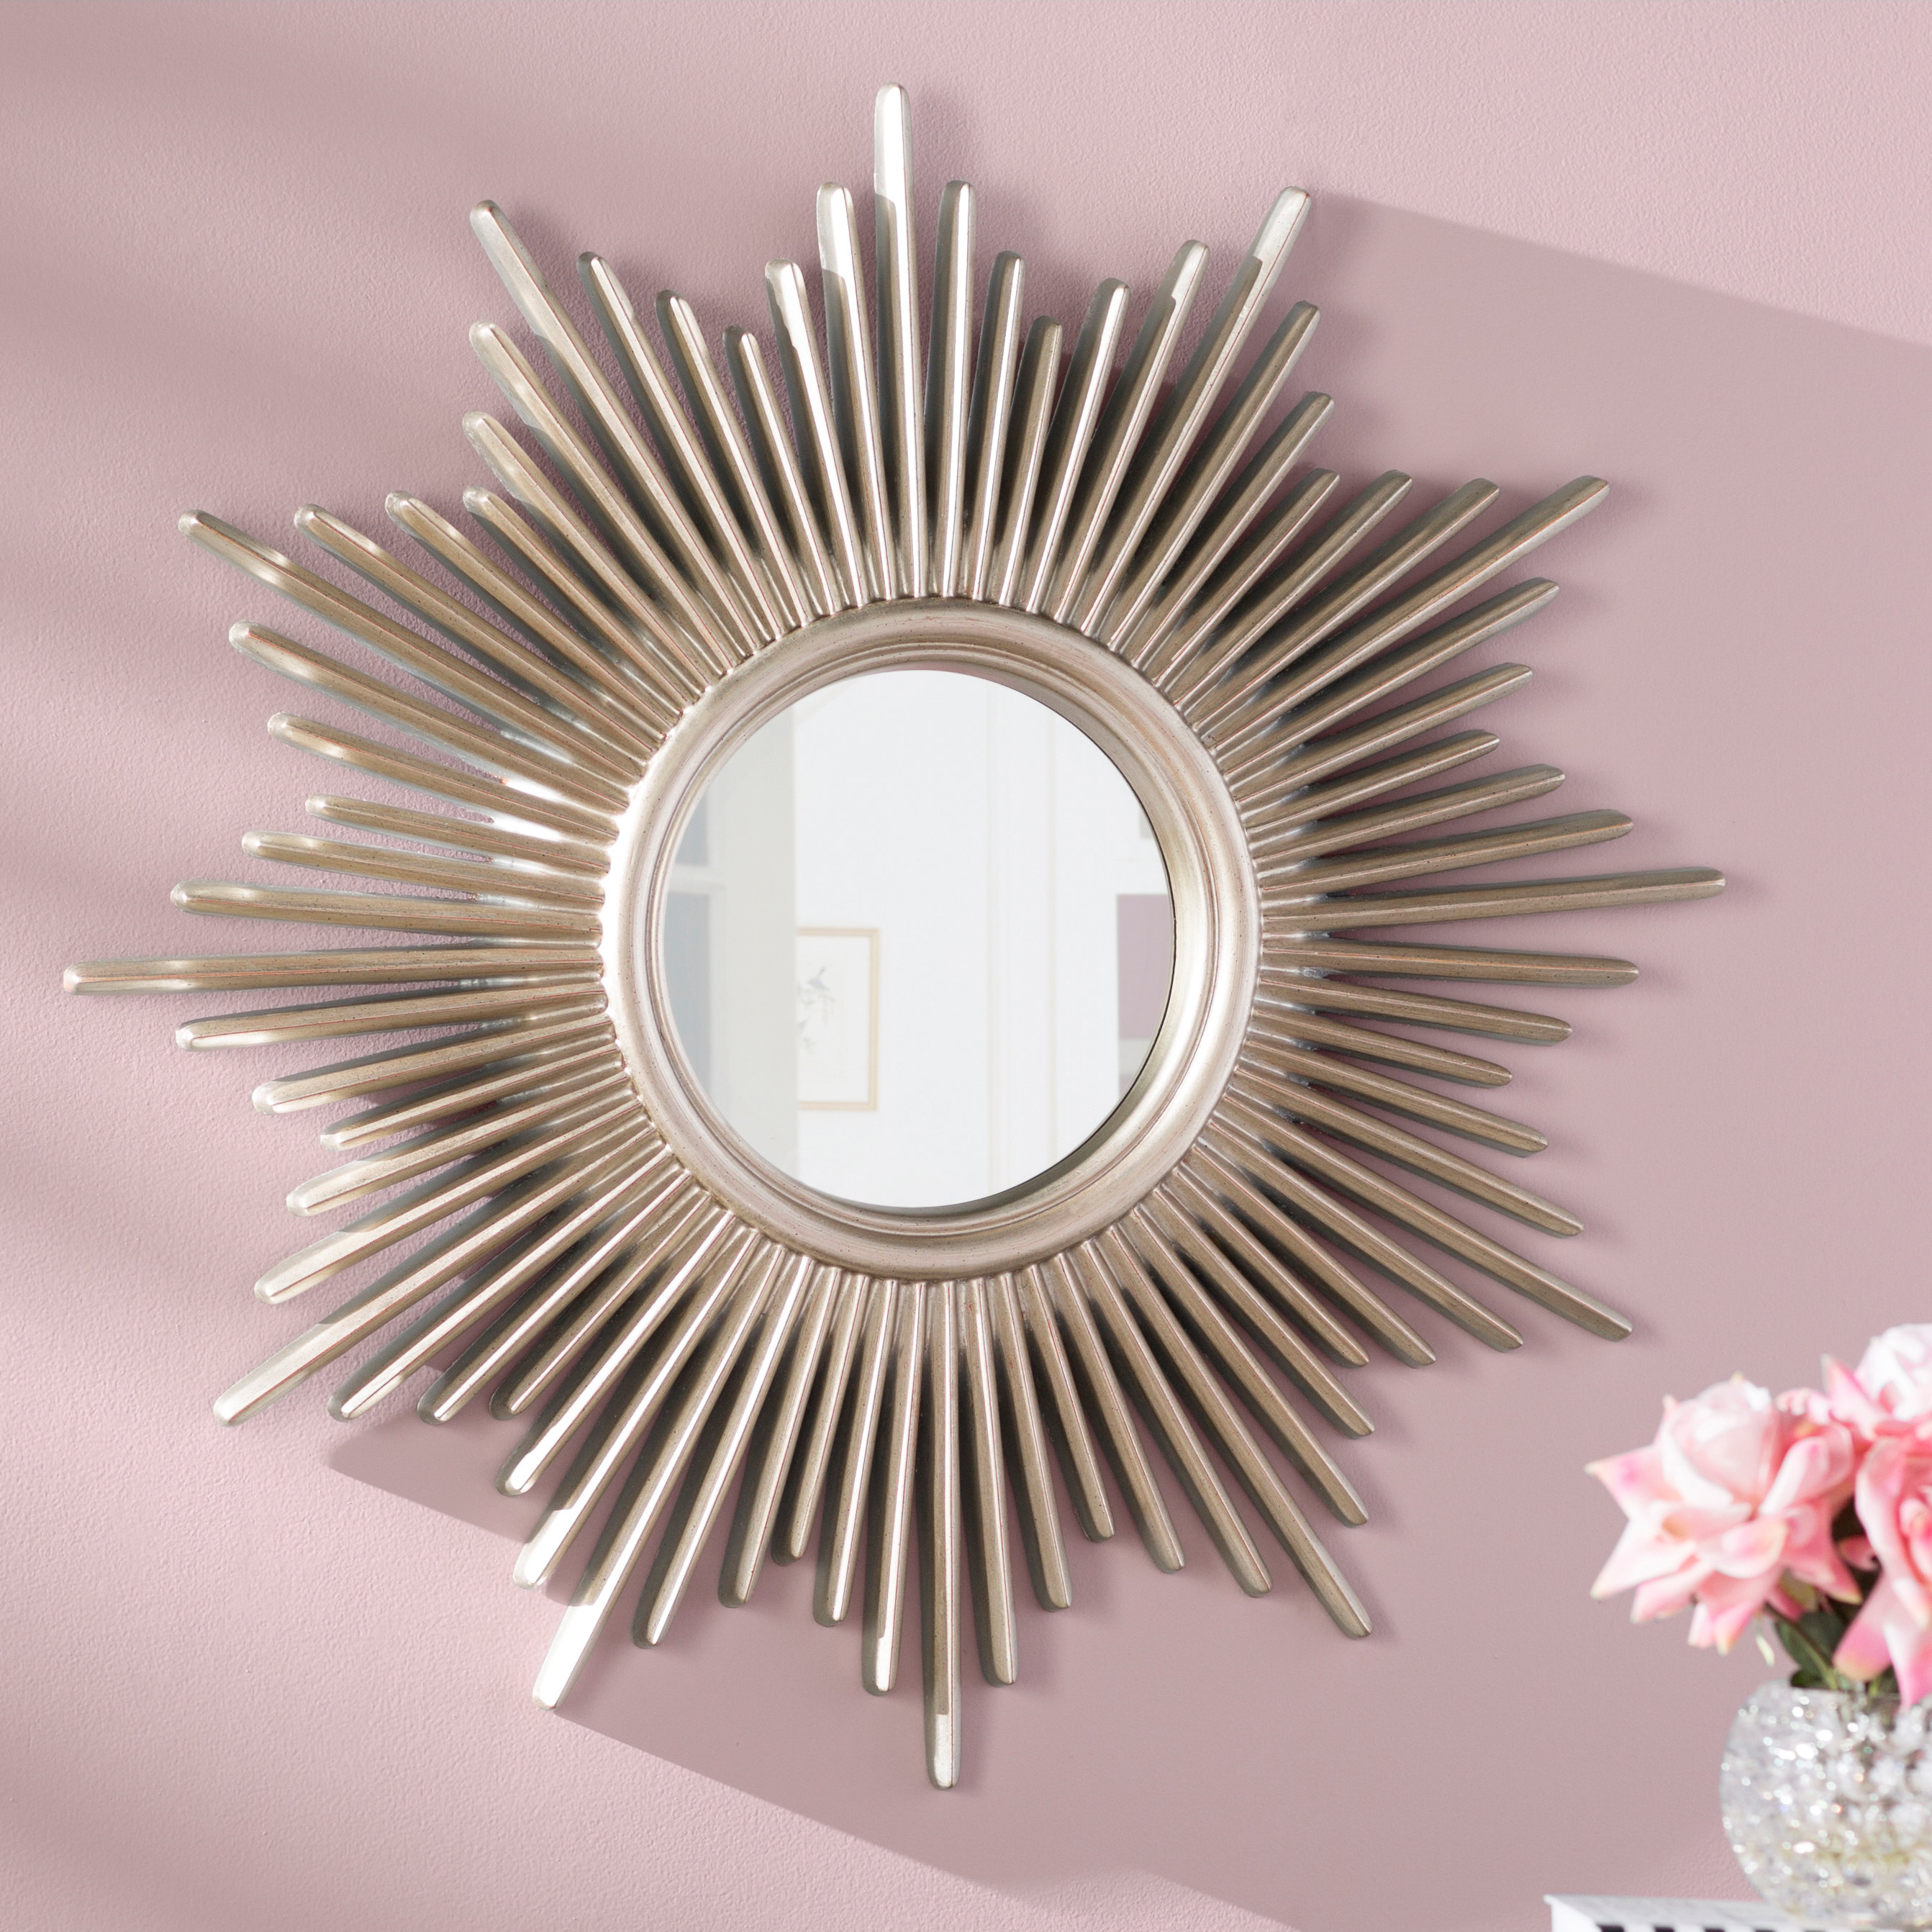 Josephson Starburst Glam Beveled Accent Wall Mirror pertaining to Jarrod Sunburst Accent Mirrors (Image 12 of 30)